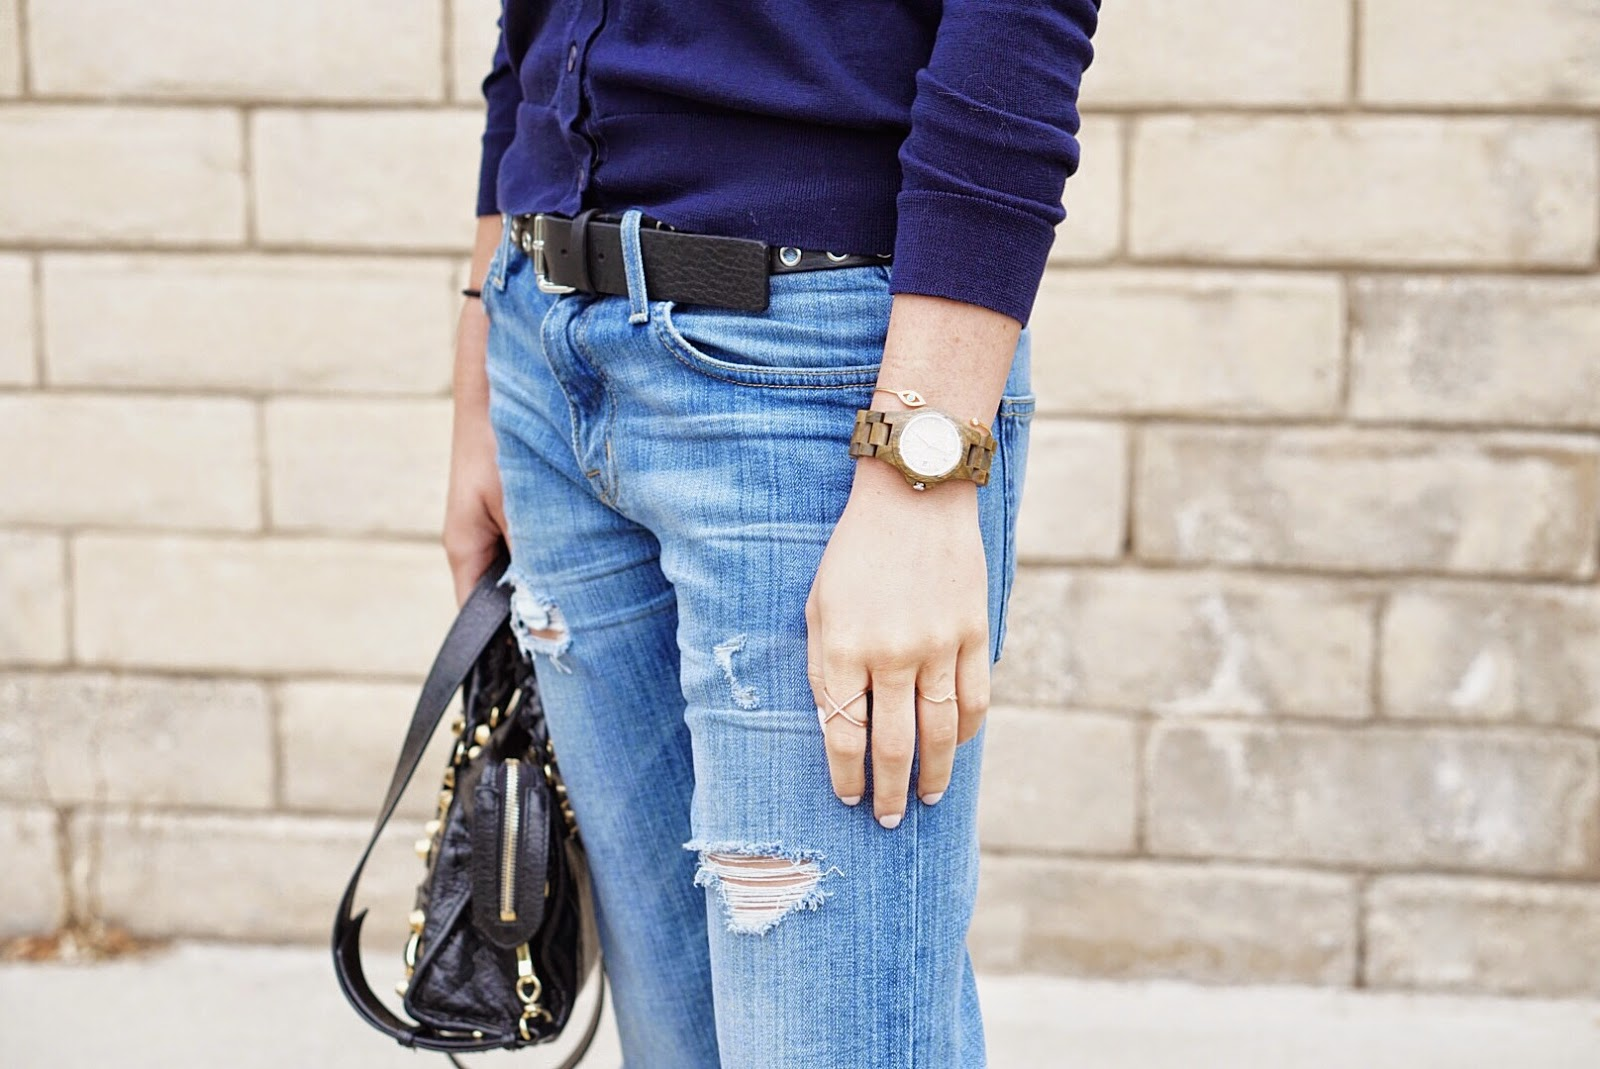 jord watches, wood watch, womens watches, swedish watches, fashion blogger los angeles, uniqlo lifewear, uniqlo cardigan, balenciaga mini city bag